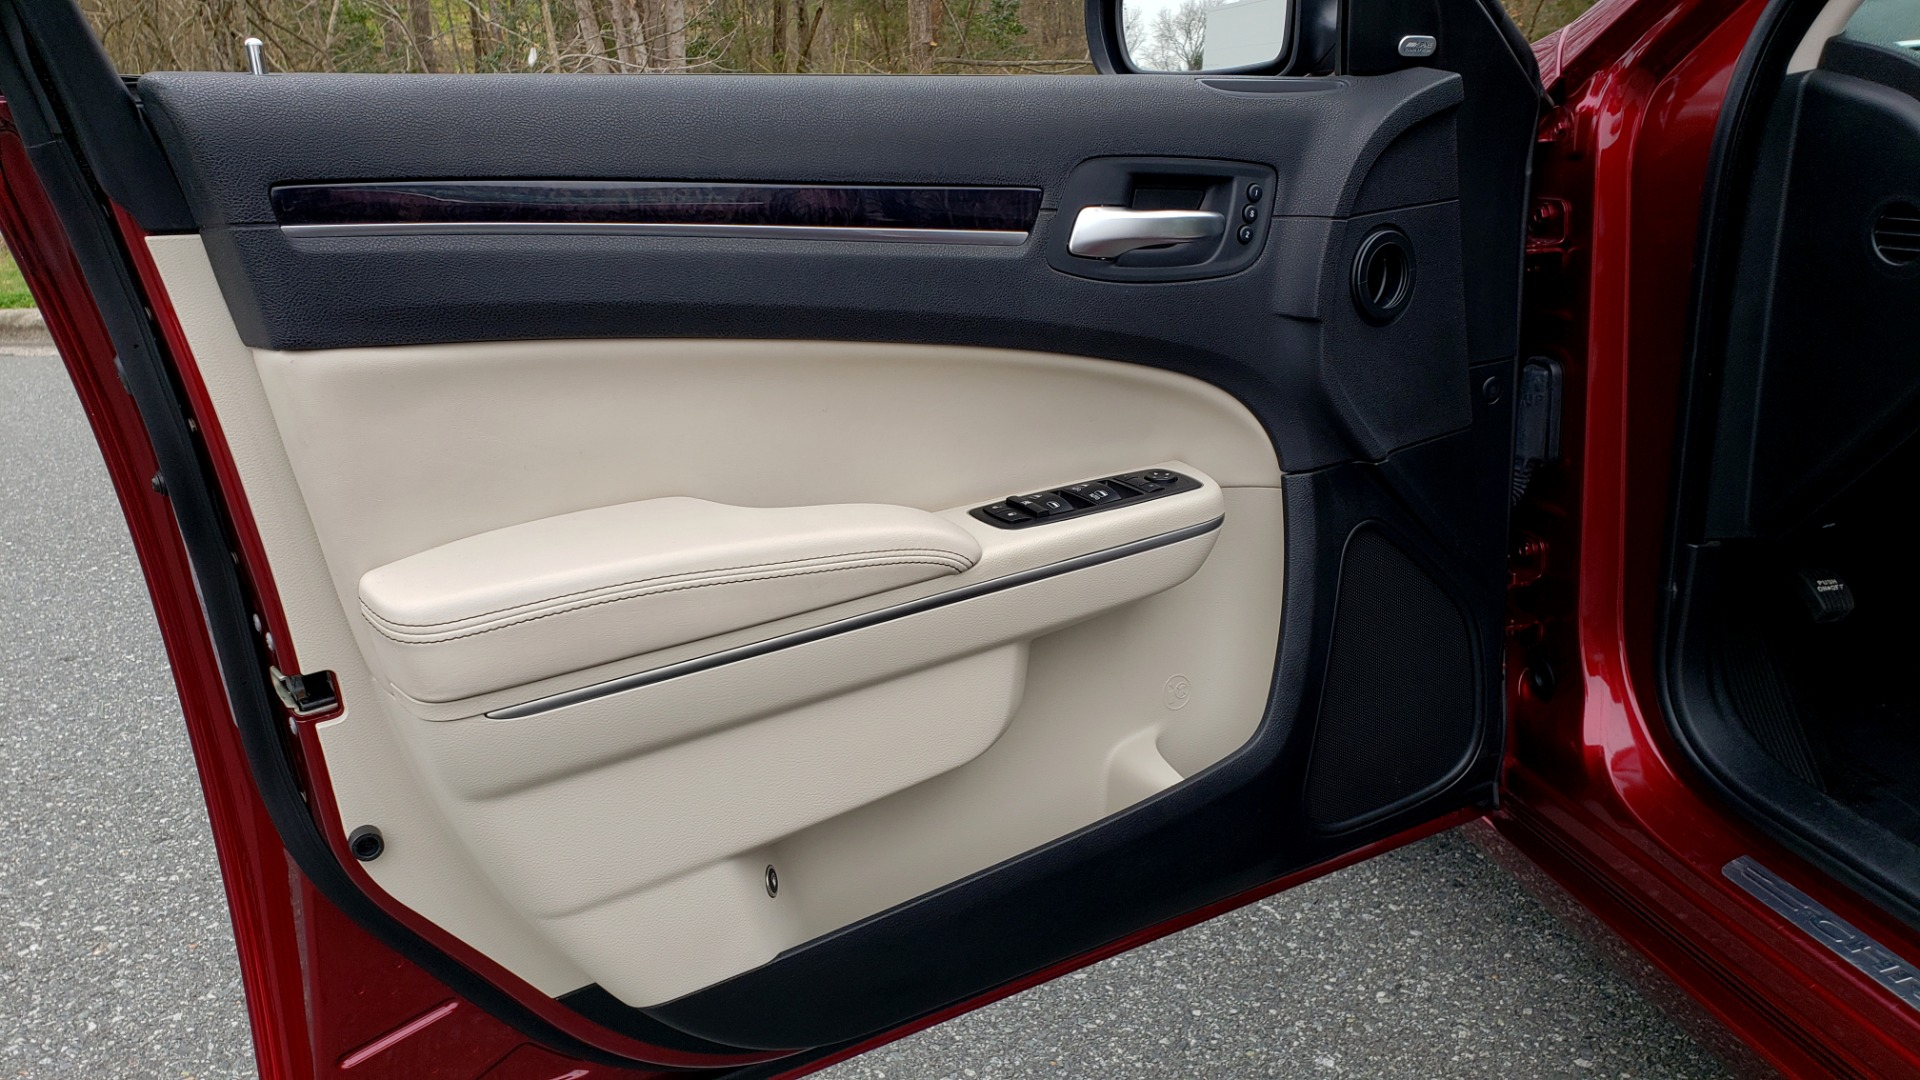 Used 2019 Chrysler 300 LIMITED / 3.6L V6 / 8-SPD AUTO / LEATHER / REARVIEW for sale Sold at Formula Imports in Charlotte NC 28227 36